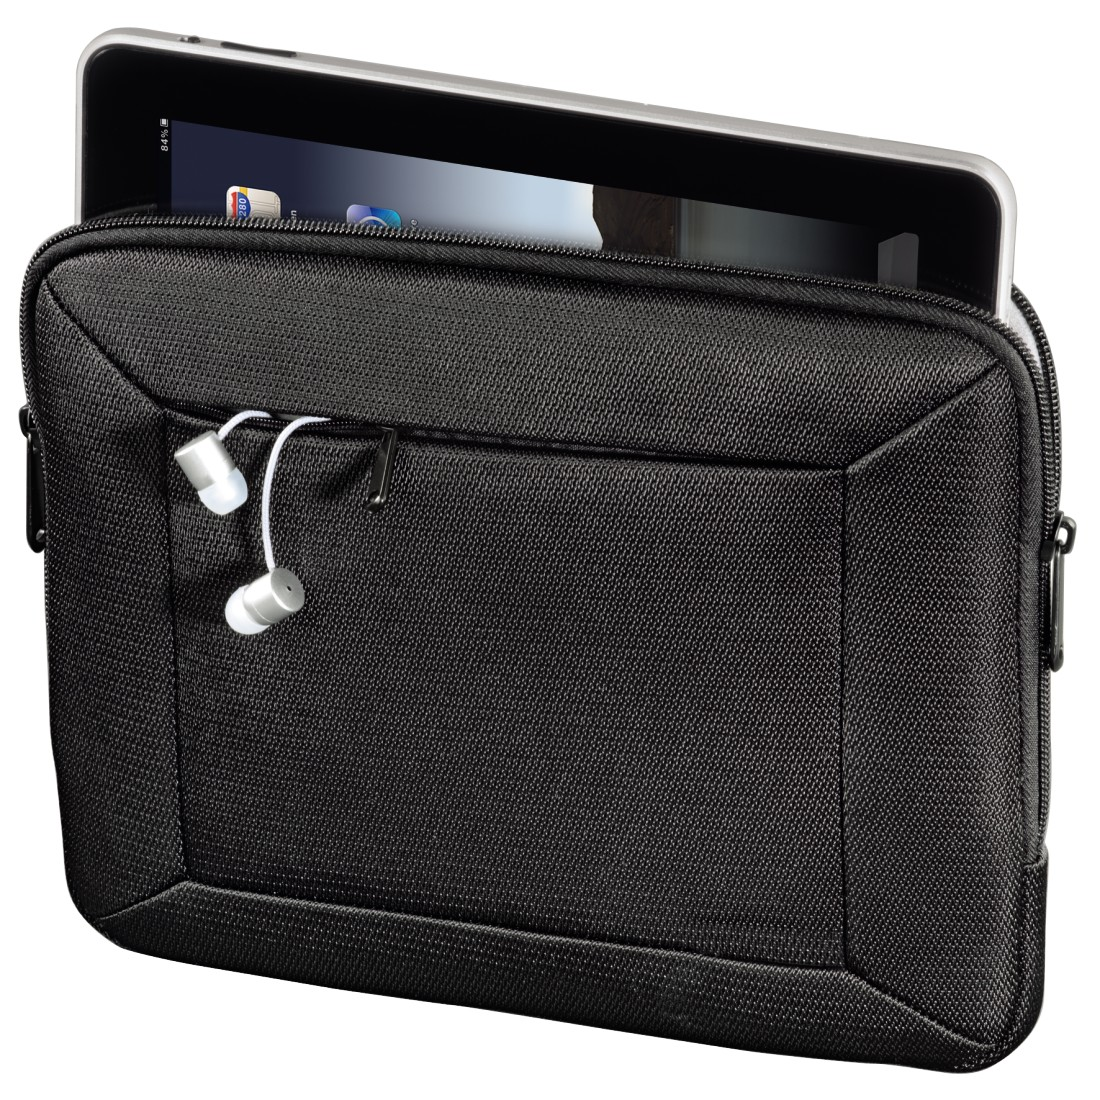 awx High-Res Appliance - Hama, Softboard Sleeve for Apple iPad/2/3rd/4th Generation, black